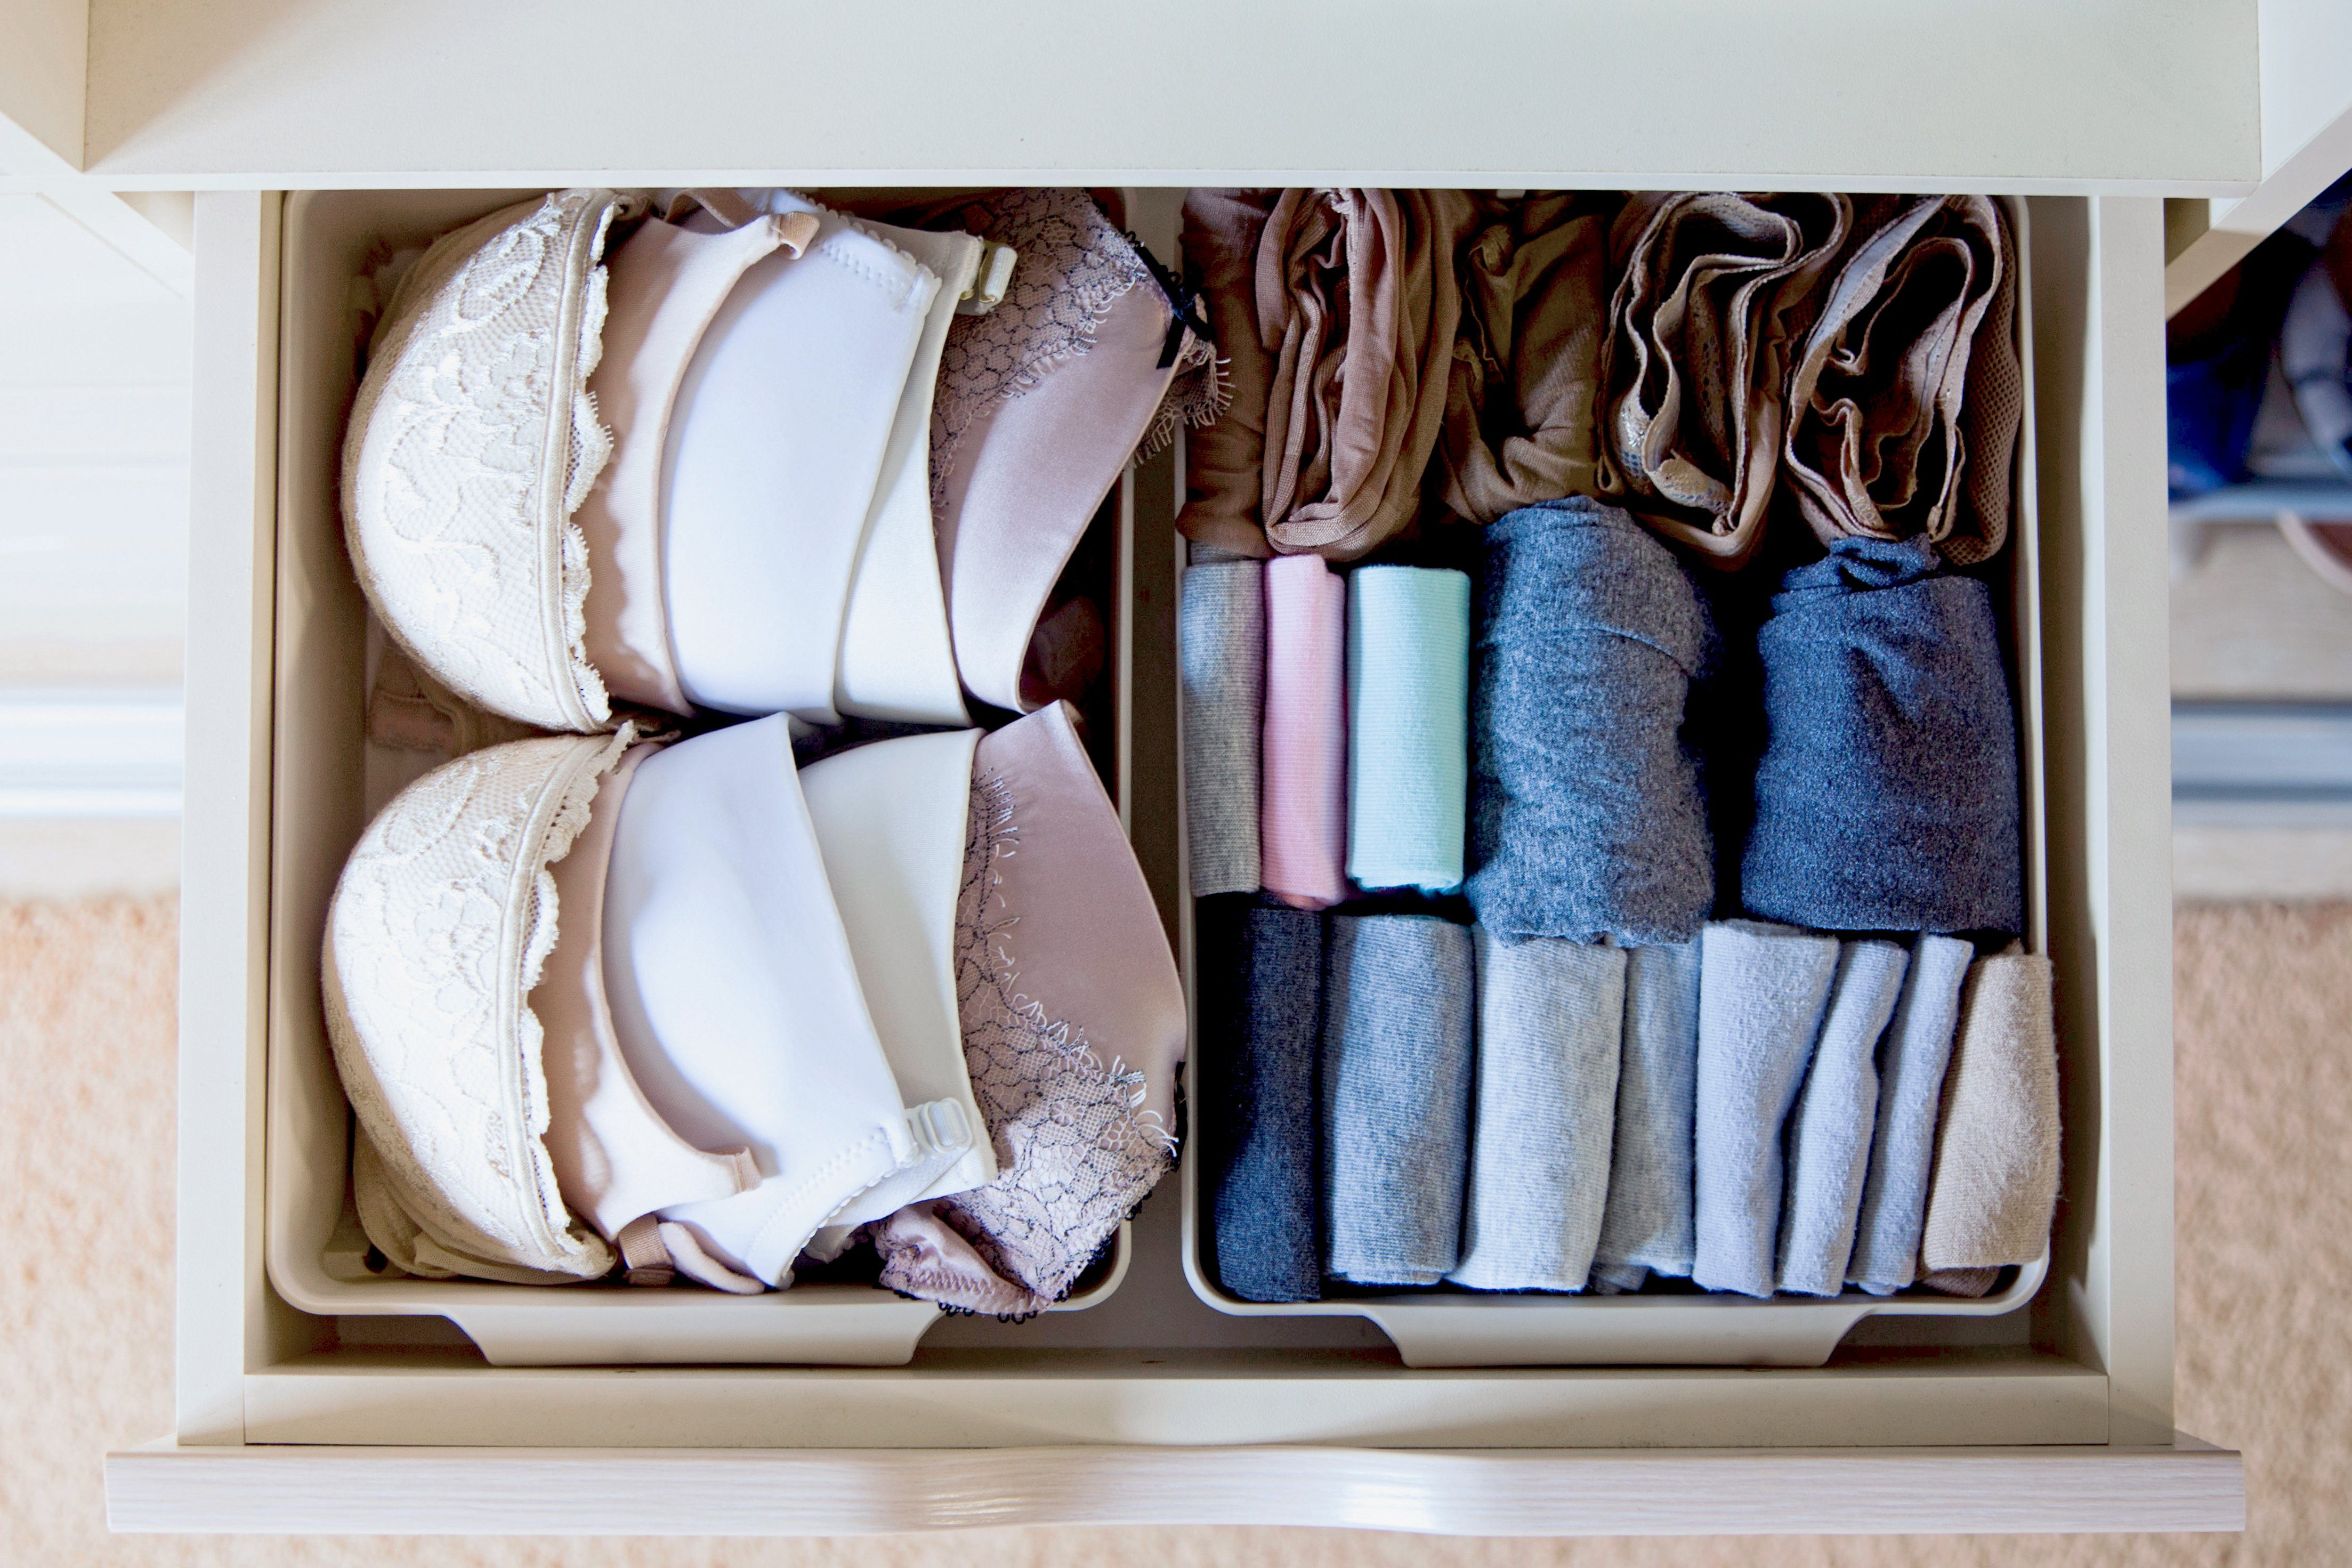 Drawer with underwear, socks, bras and bedding in the closet. Women's Clothing lying in the locker room. ; Shutterstock ID 1565573614; Job (TFH, TOH, RD, BNB, CWM, CM): RD